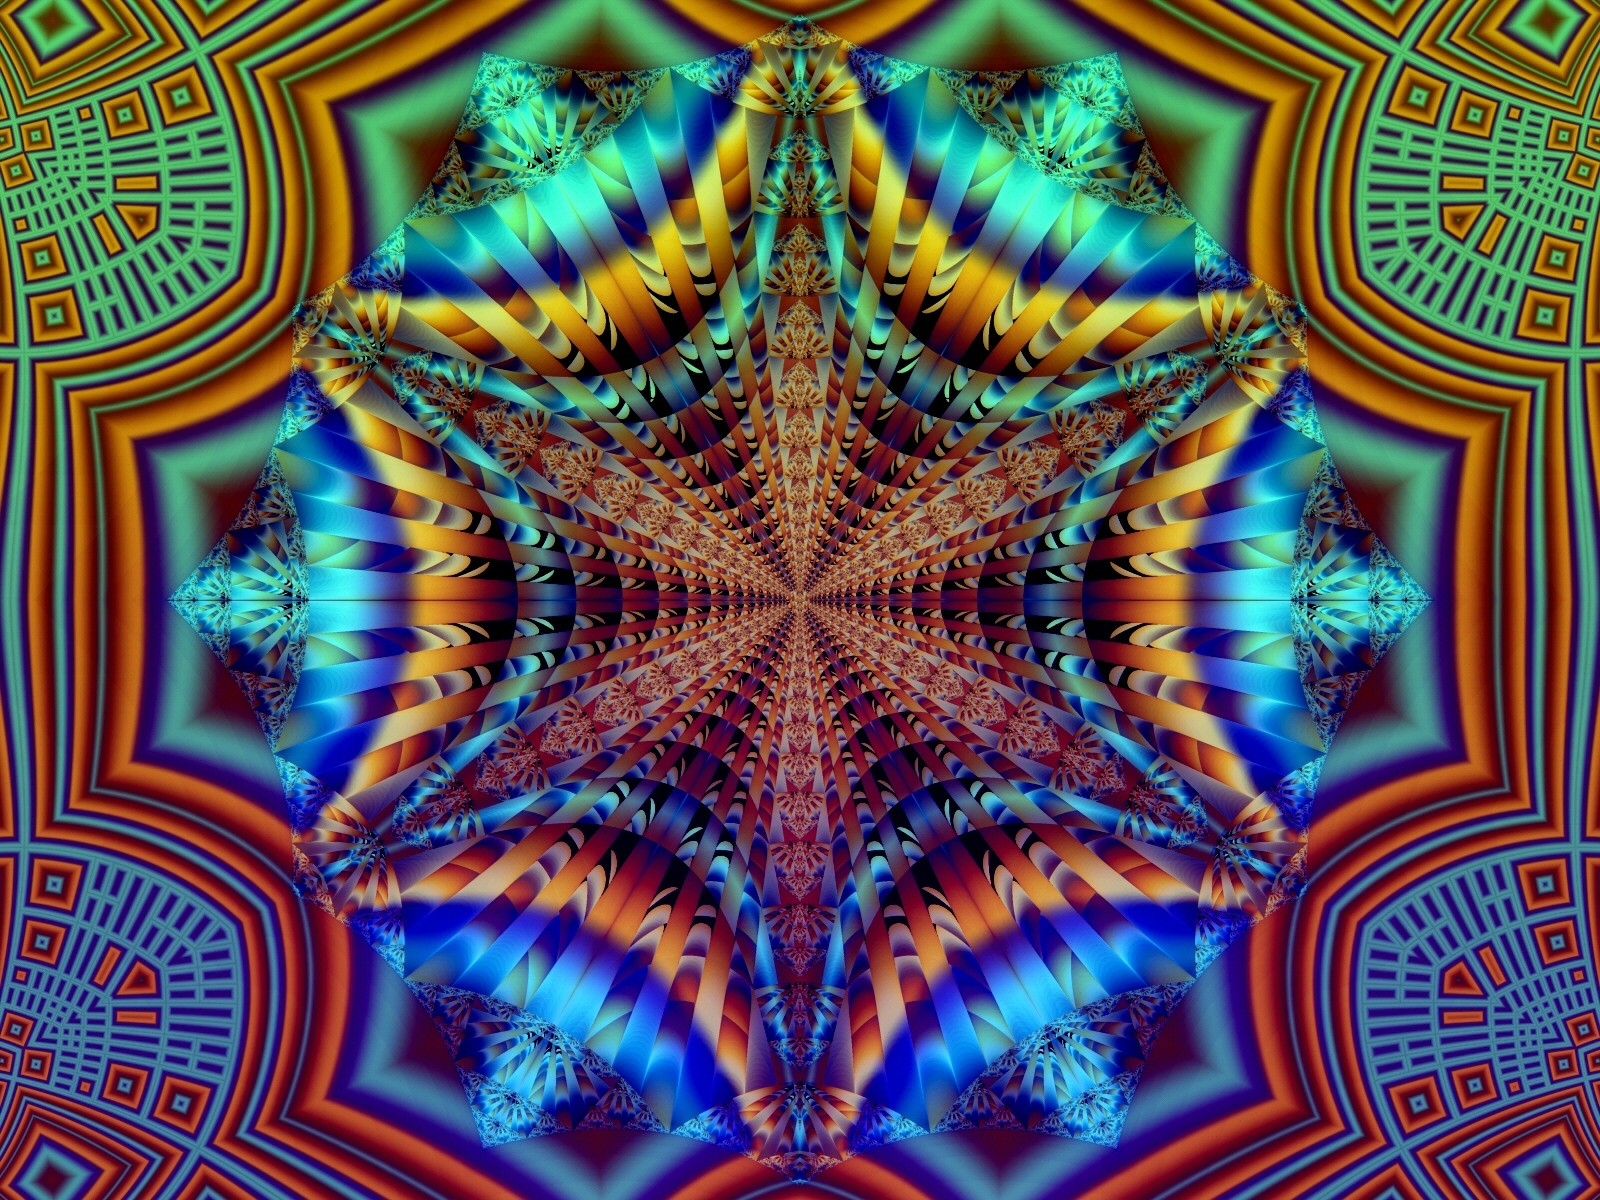 Turquoise Psychedelic Wallpaper